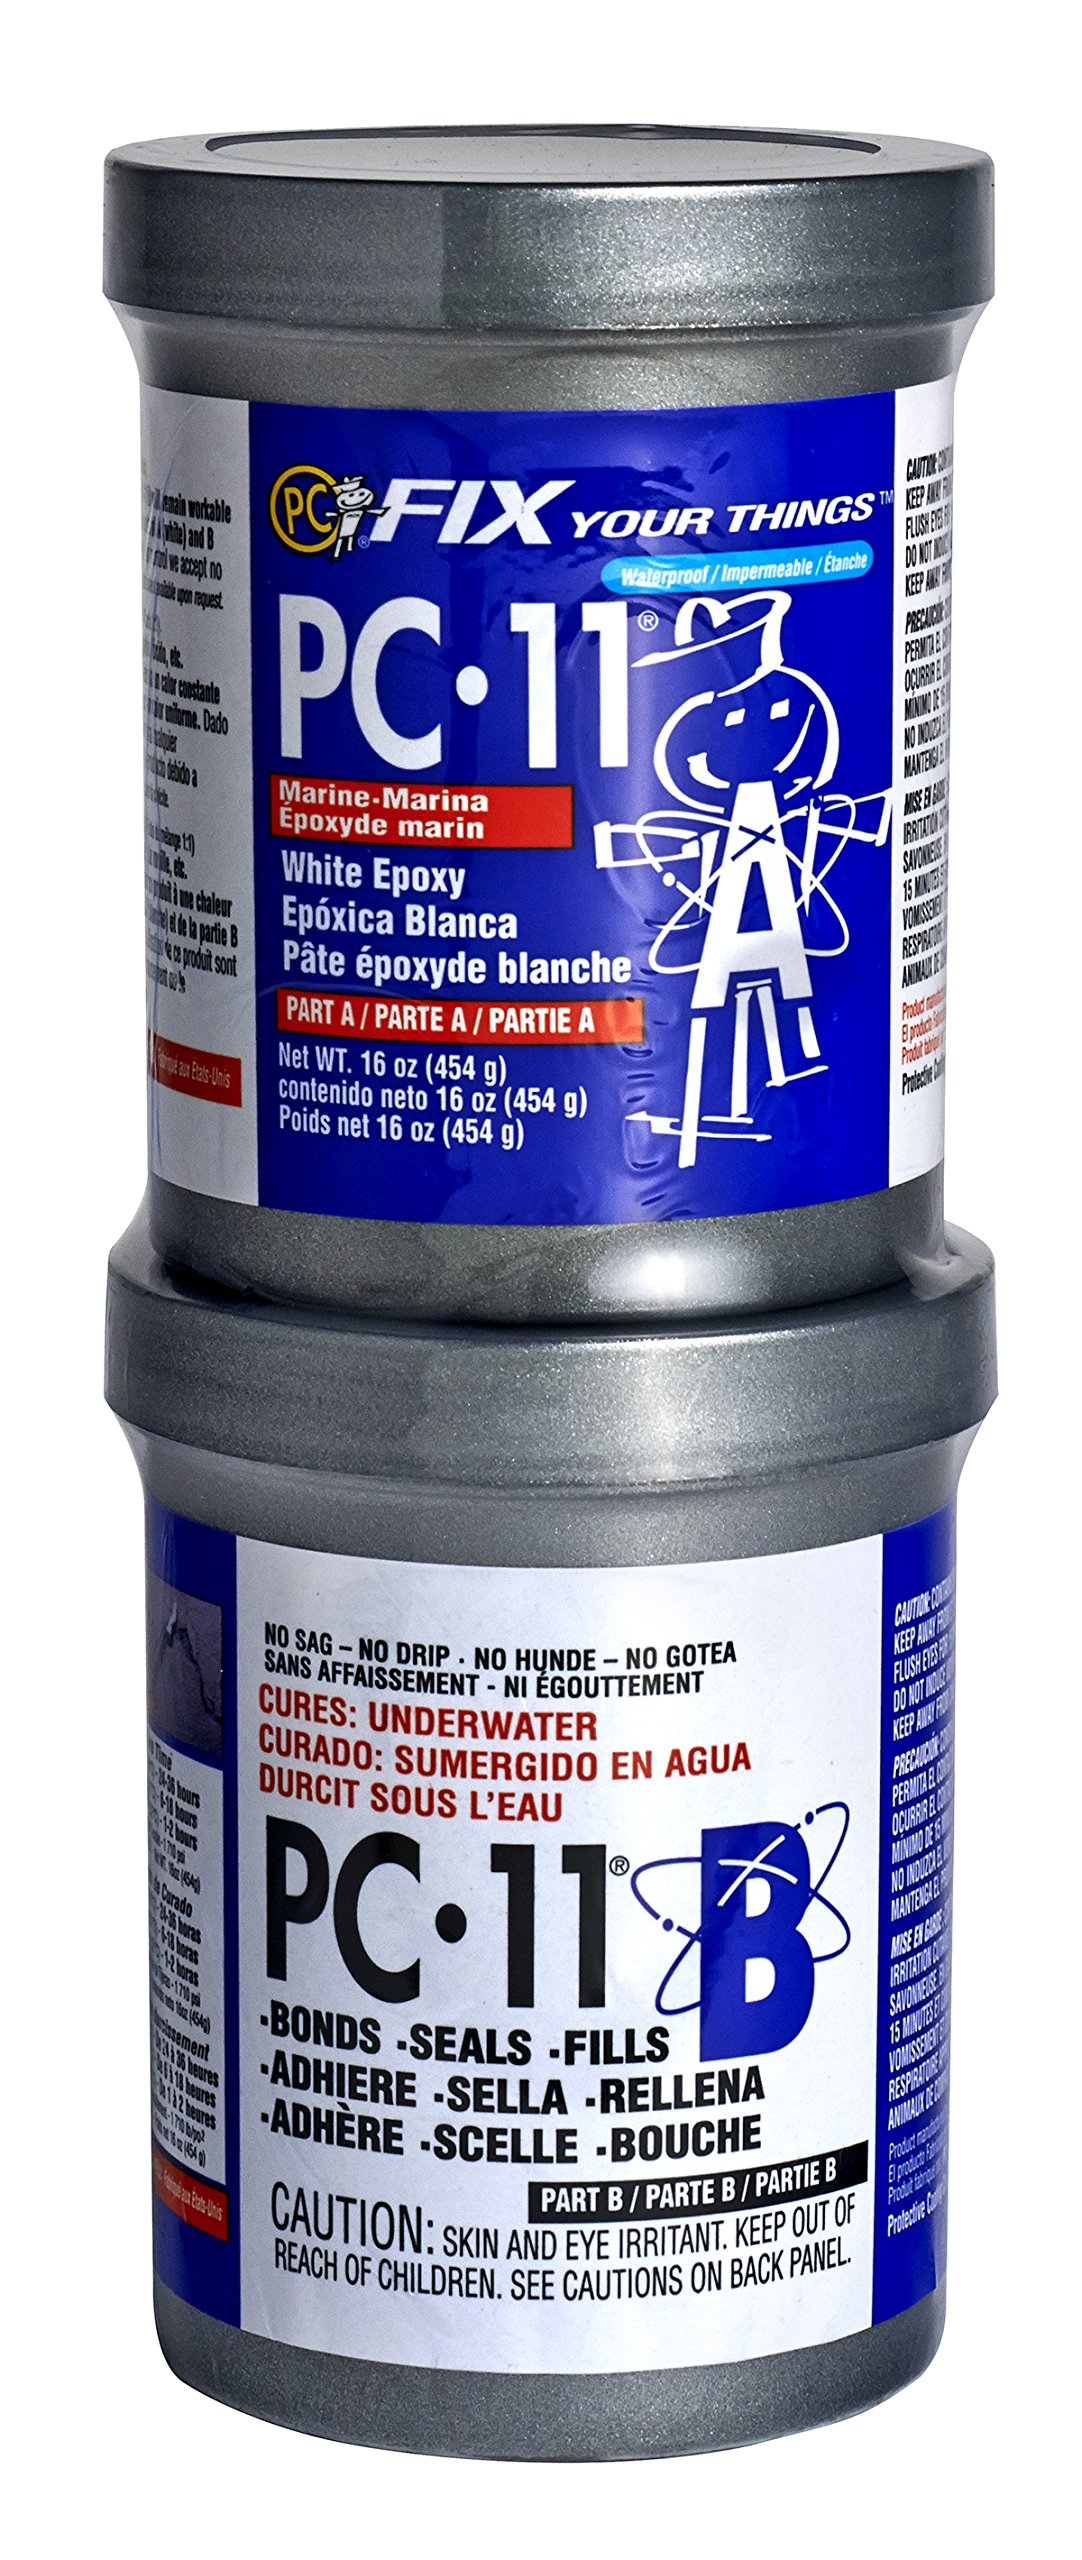 PC Products 160114 PC-11 Two-Part Marine Grade Epoxy Adhesive Paste, 1 lb in Two Cans, Off White